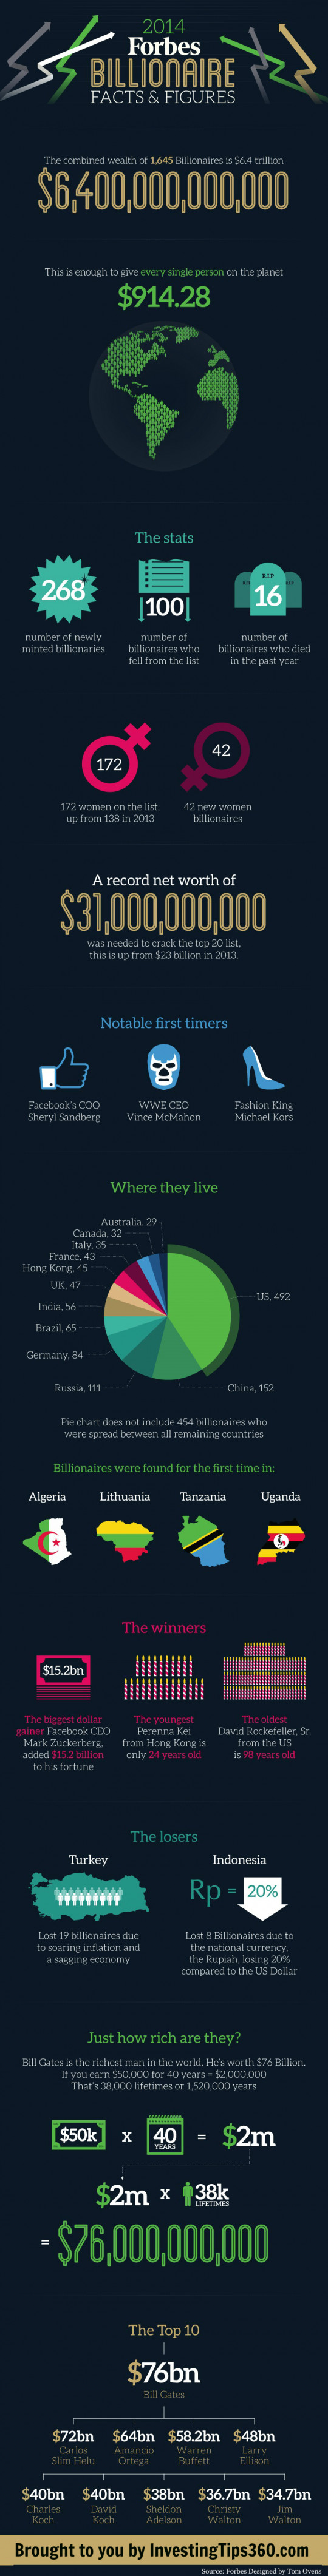 2014 Forbes Billionaire Facts & Figures